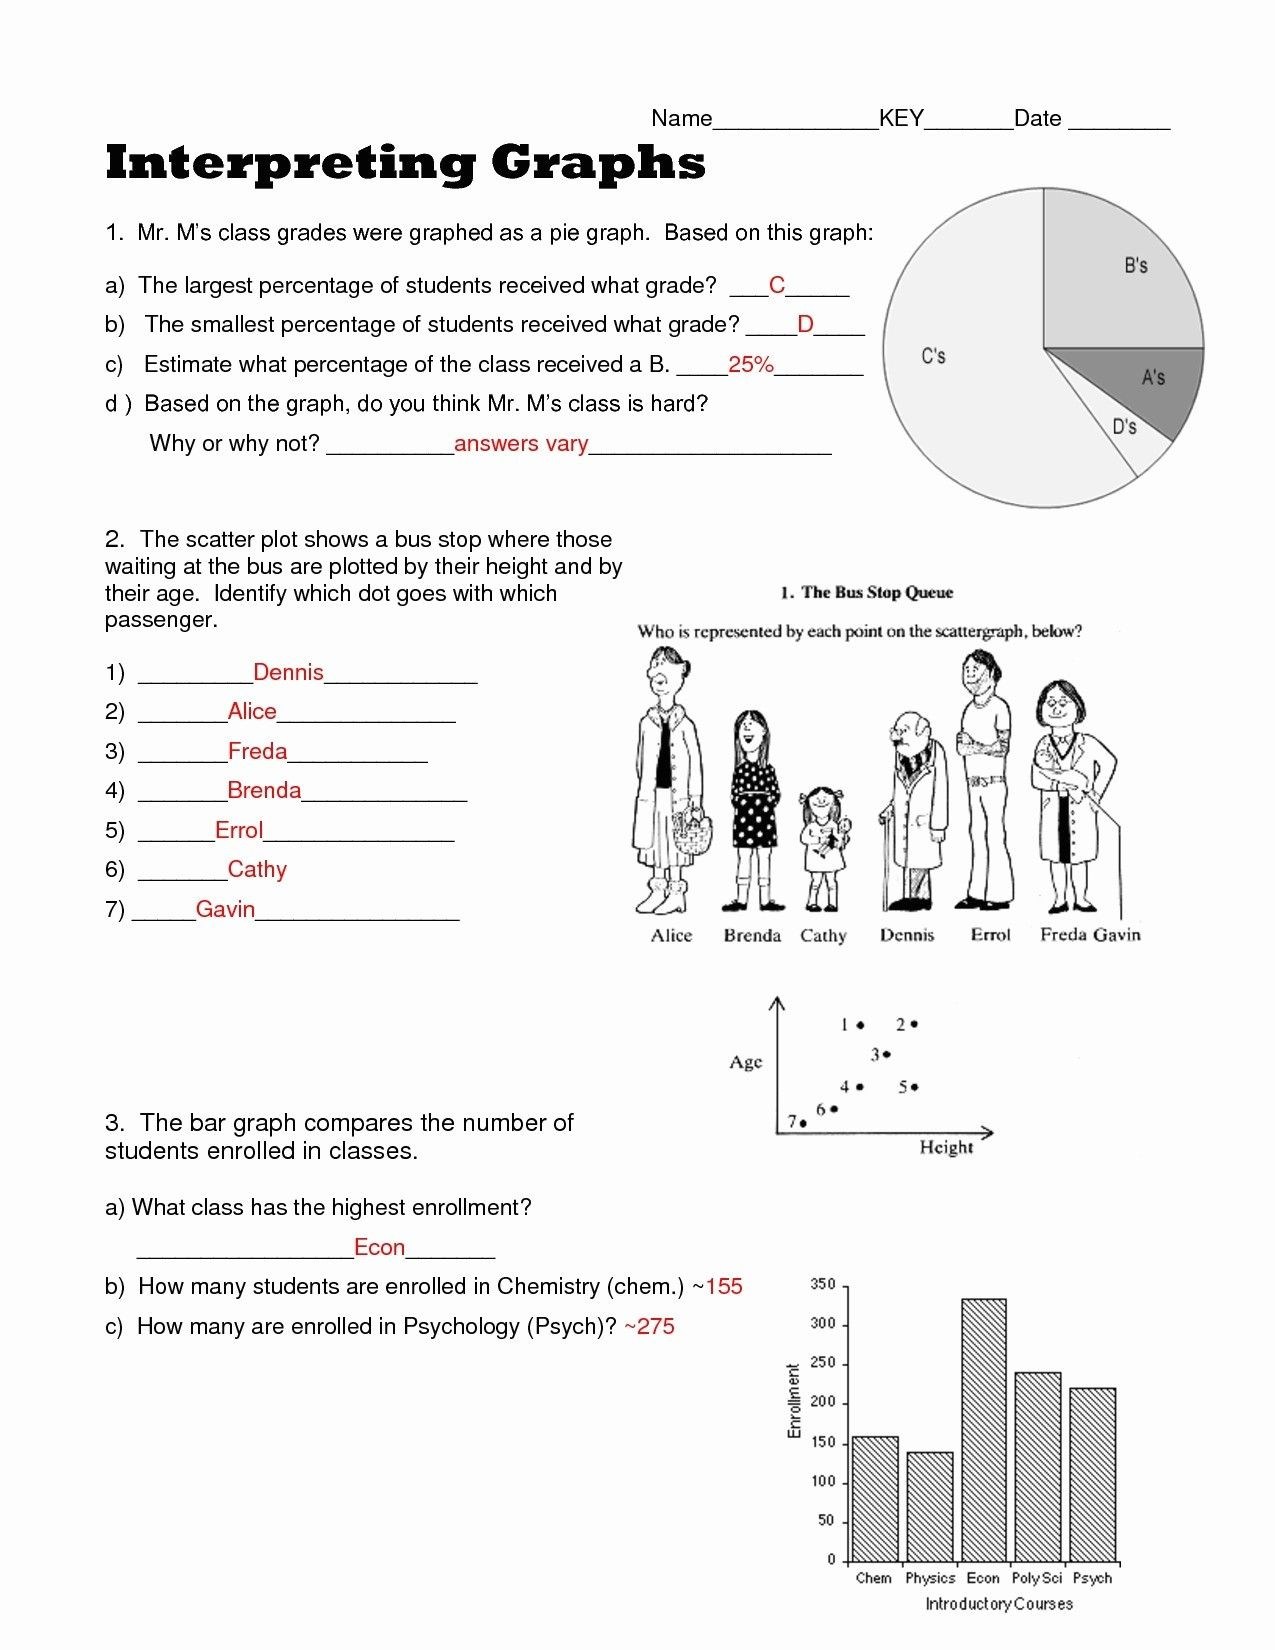 Reading Charts and Graphs Worksheets Middle School Charts and Graphs  Worksheets for Middle Sc...   Graphing worksheets [ 1650 x 1275 Pixel ]